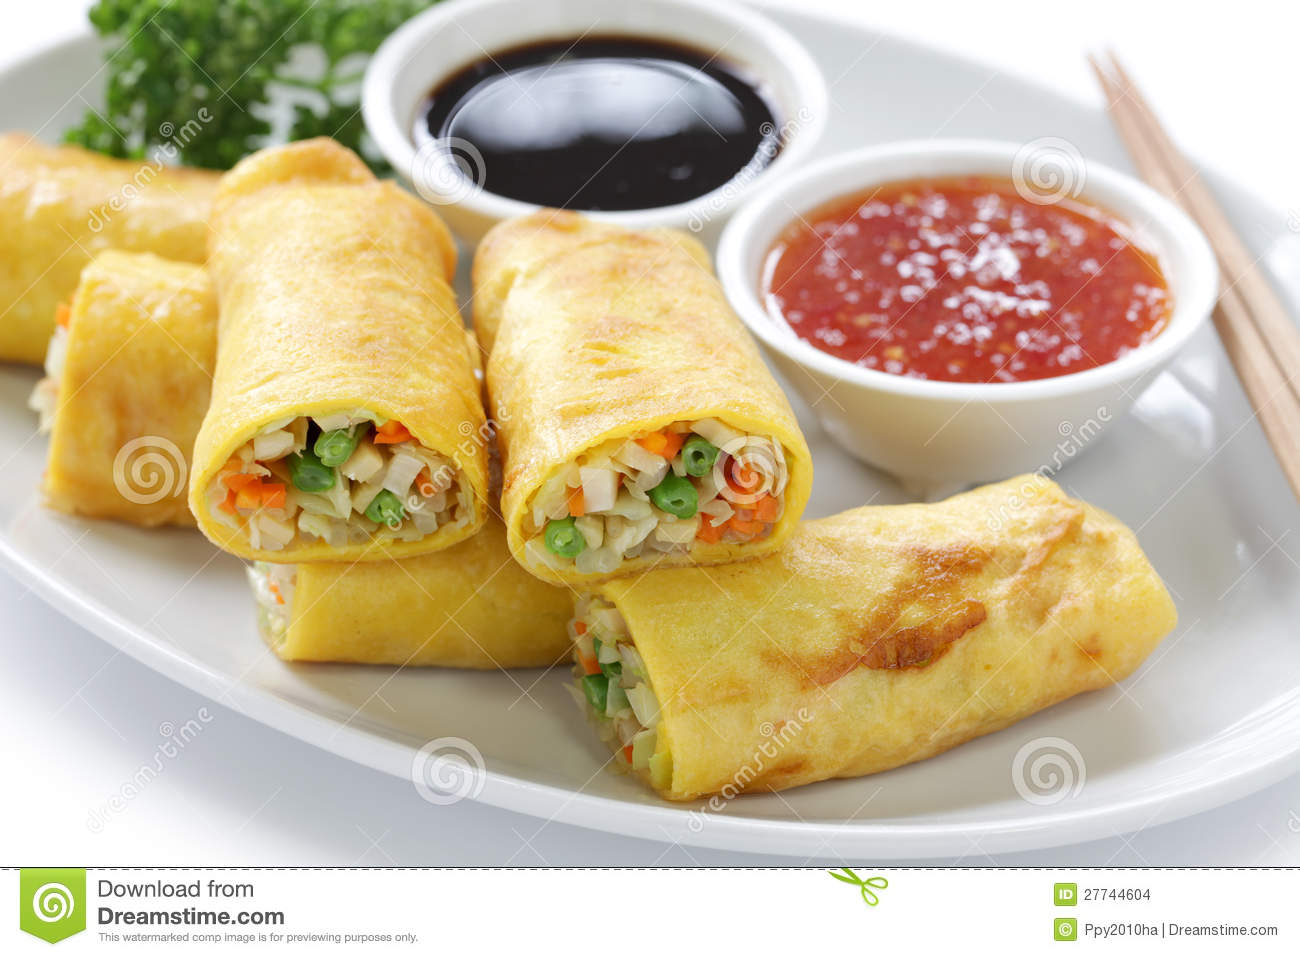 Homemade vegetarian egg rolls on a white background.